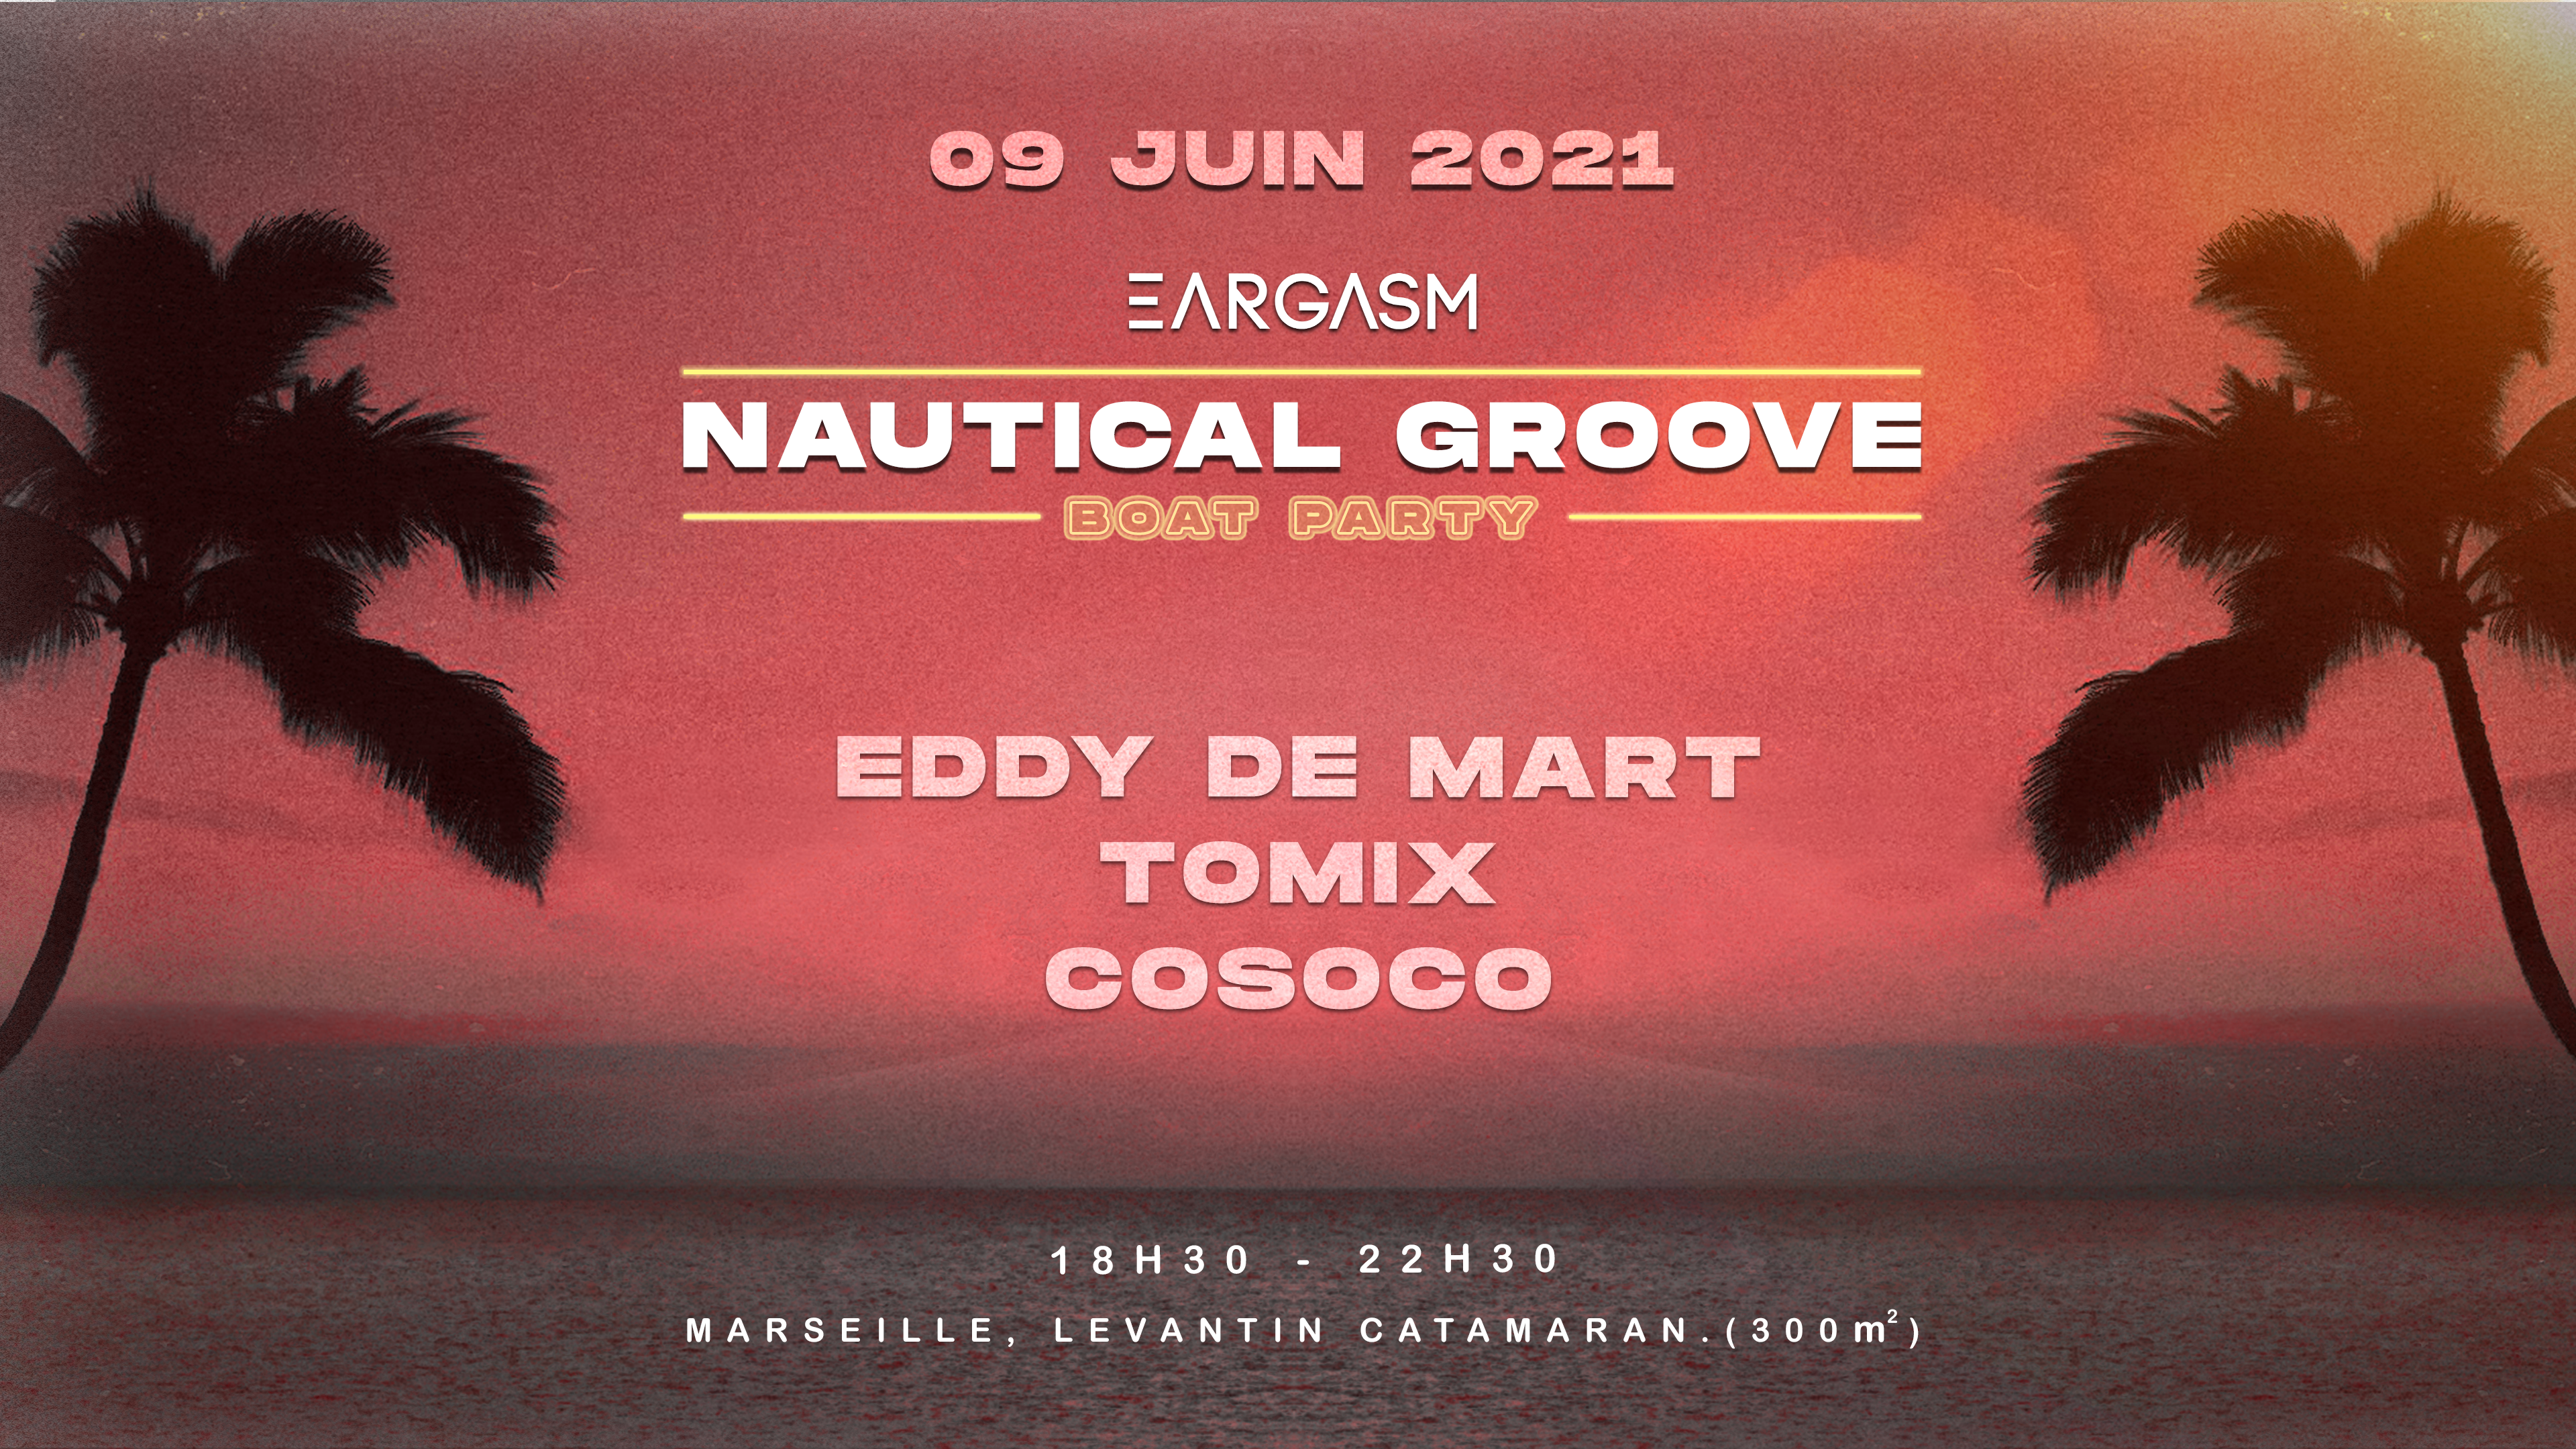 NAUTICAL GROOVE #5 [OPENING 2021] - BOAT PARTY by EARGASM